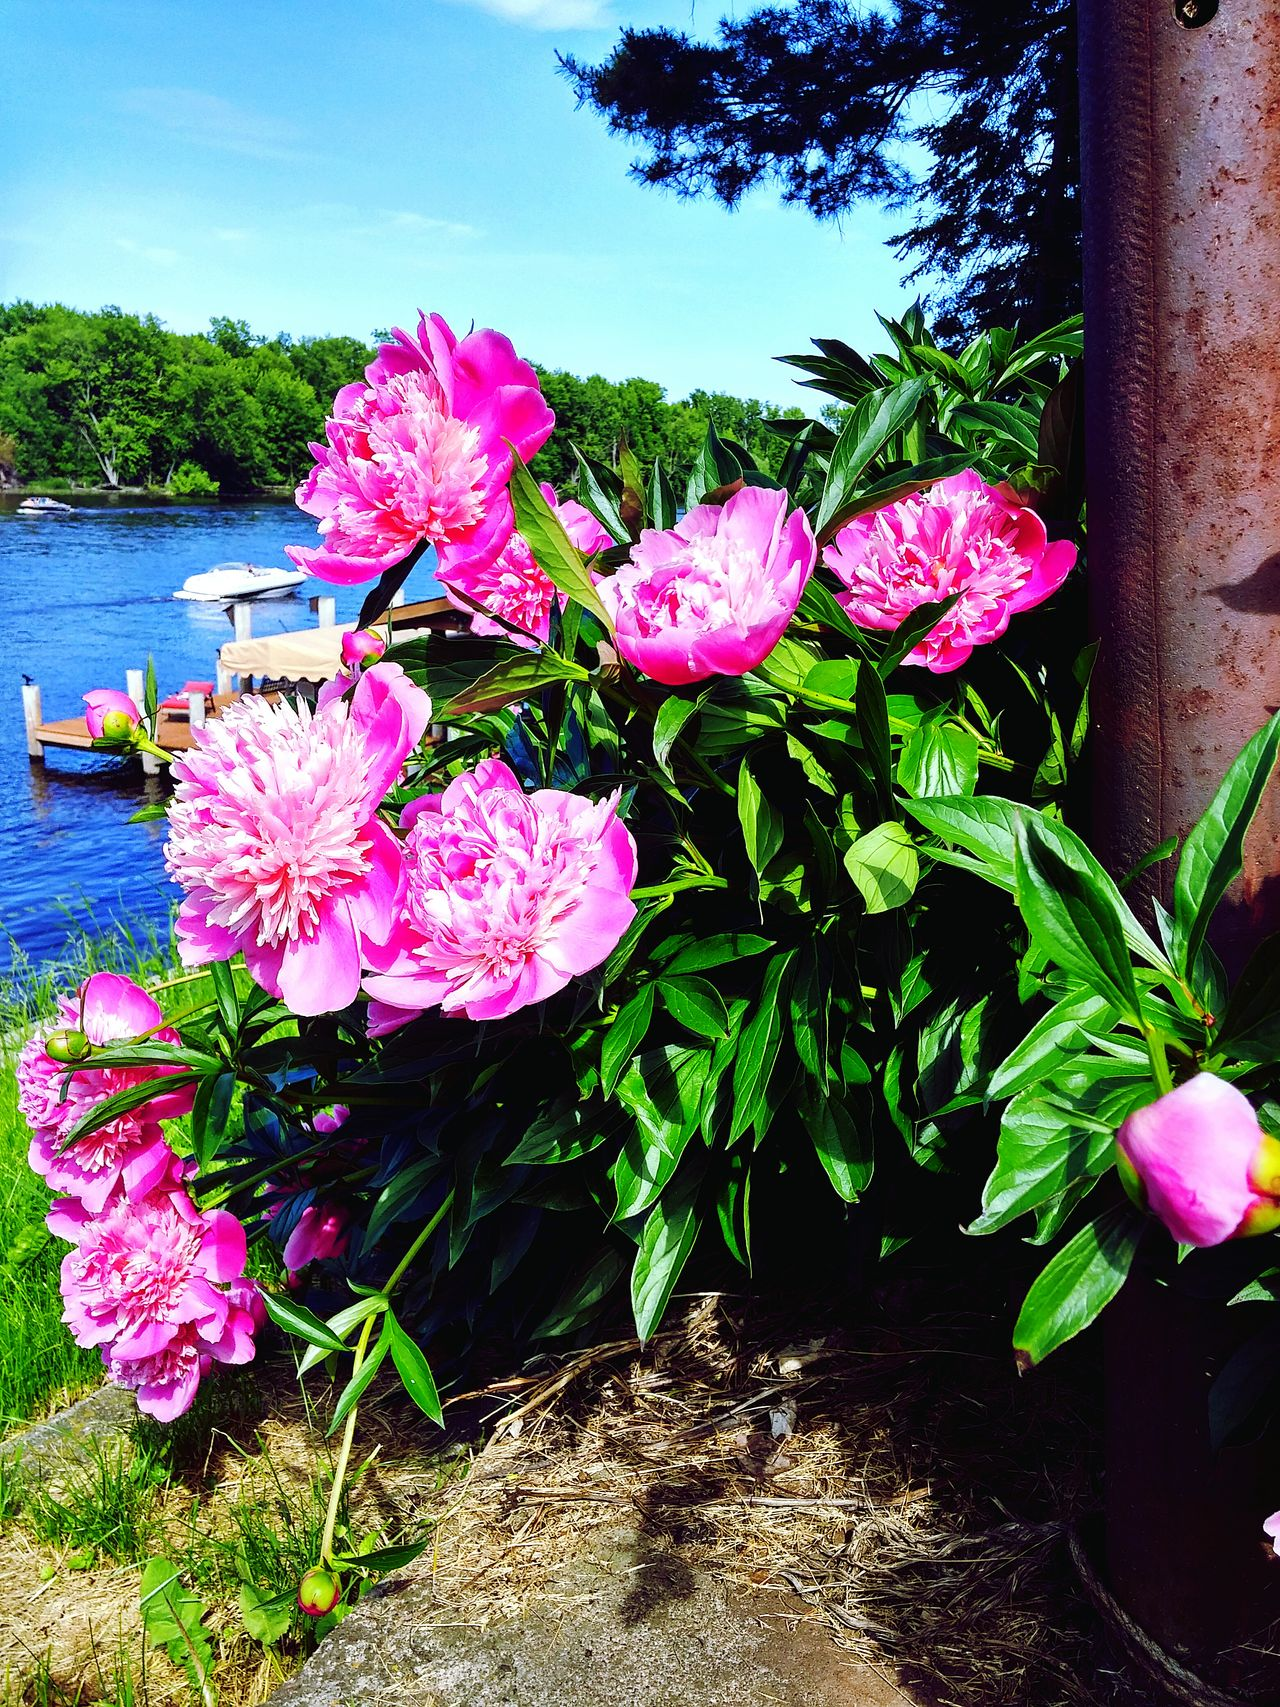 Colour Of Life Wolf River Flowers Boat Water Scape Blue Sky